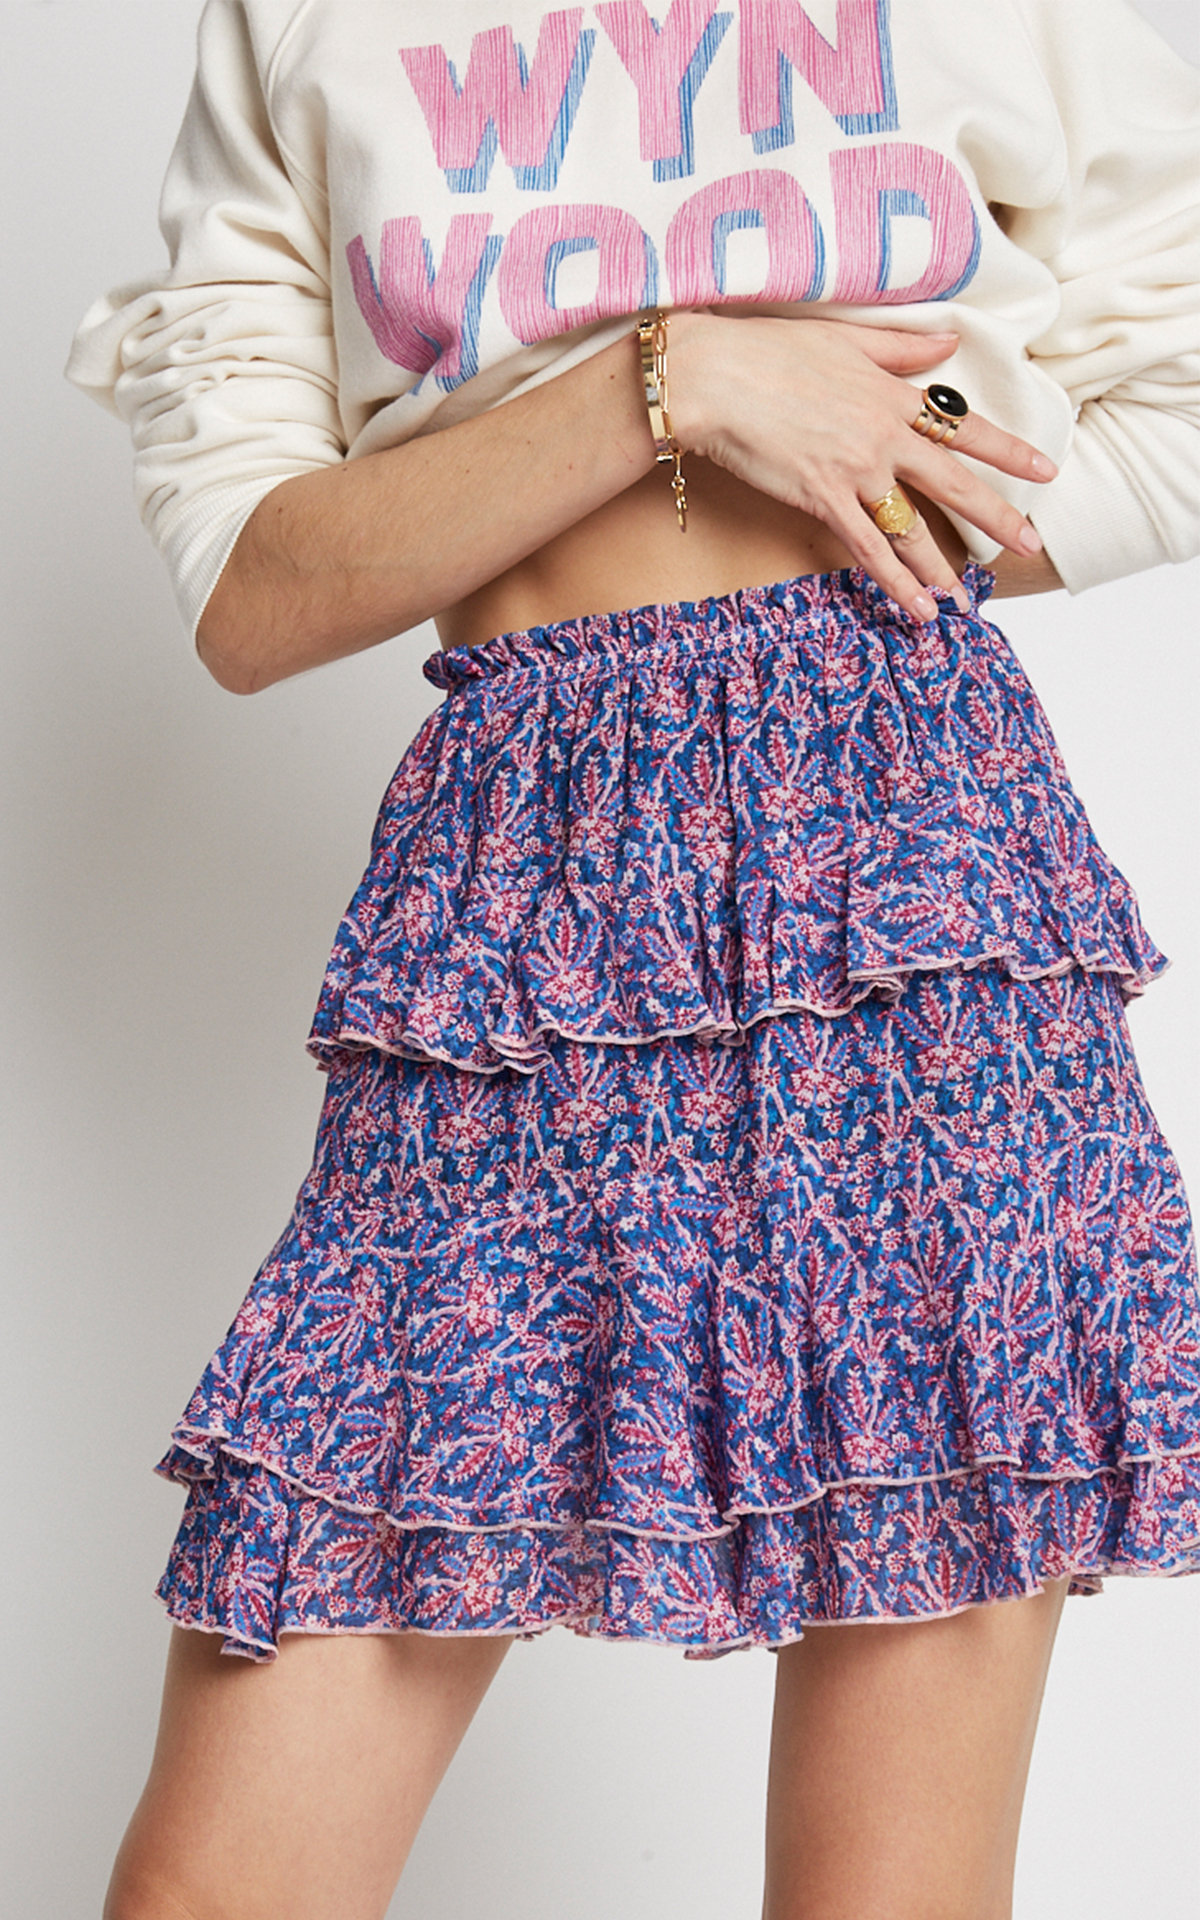 La Vallée Village Bérénice Joy Bal Harbour skirt